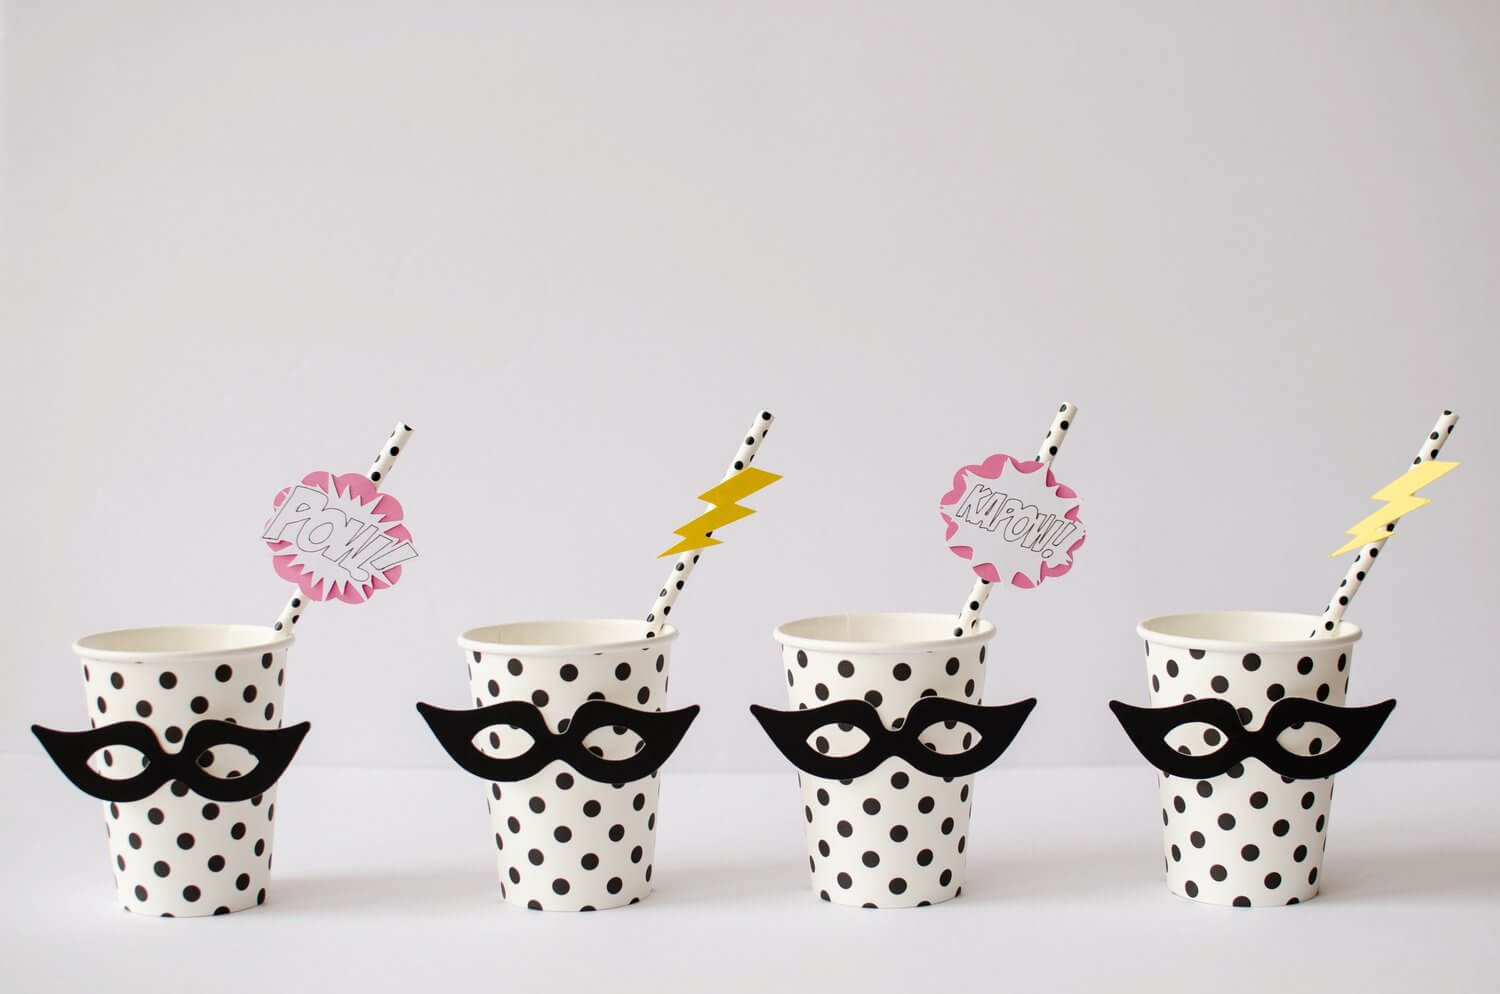 Don't forget to dress up your party cups and straws with coordinating Super Hero Masks and superhero sayings including POW! - see more kids party ideas on Mint Event Design www.minteventdesign.com